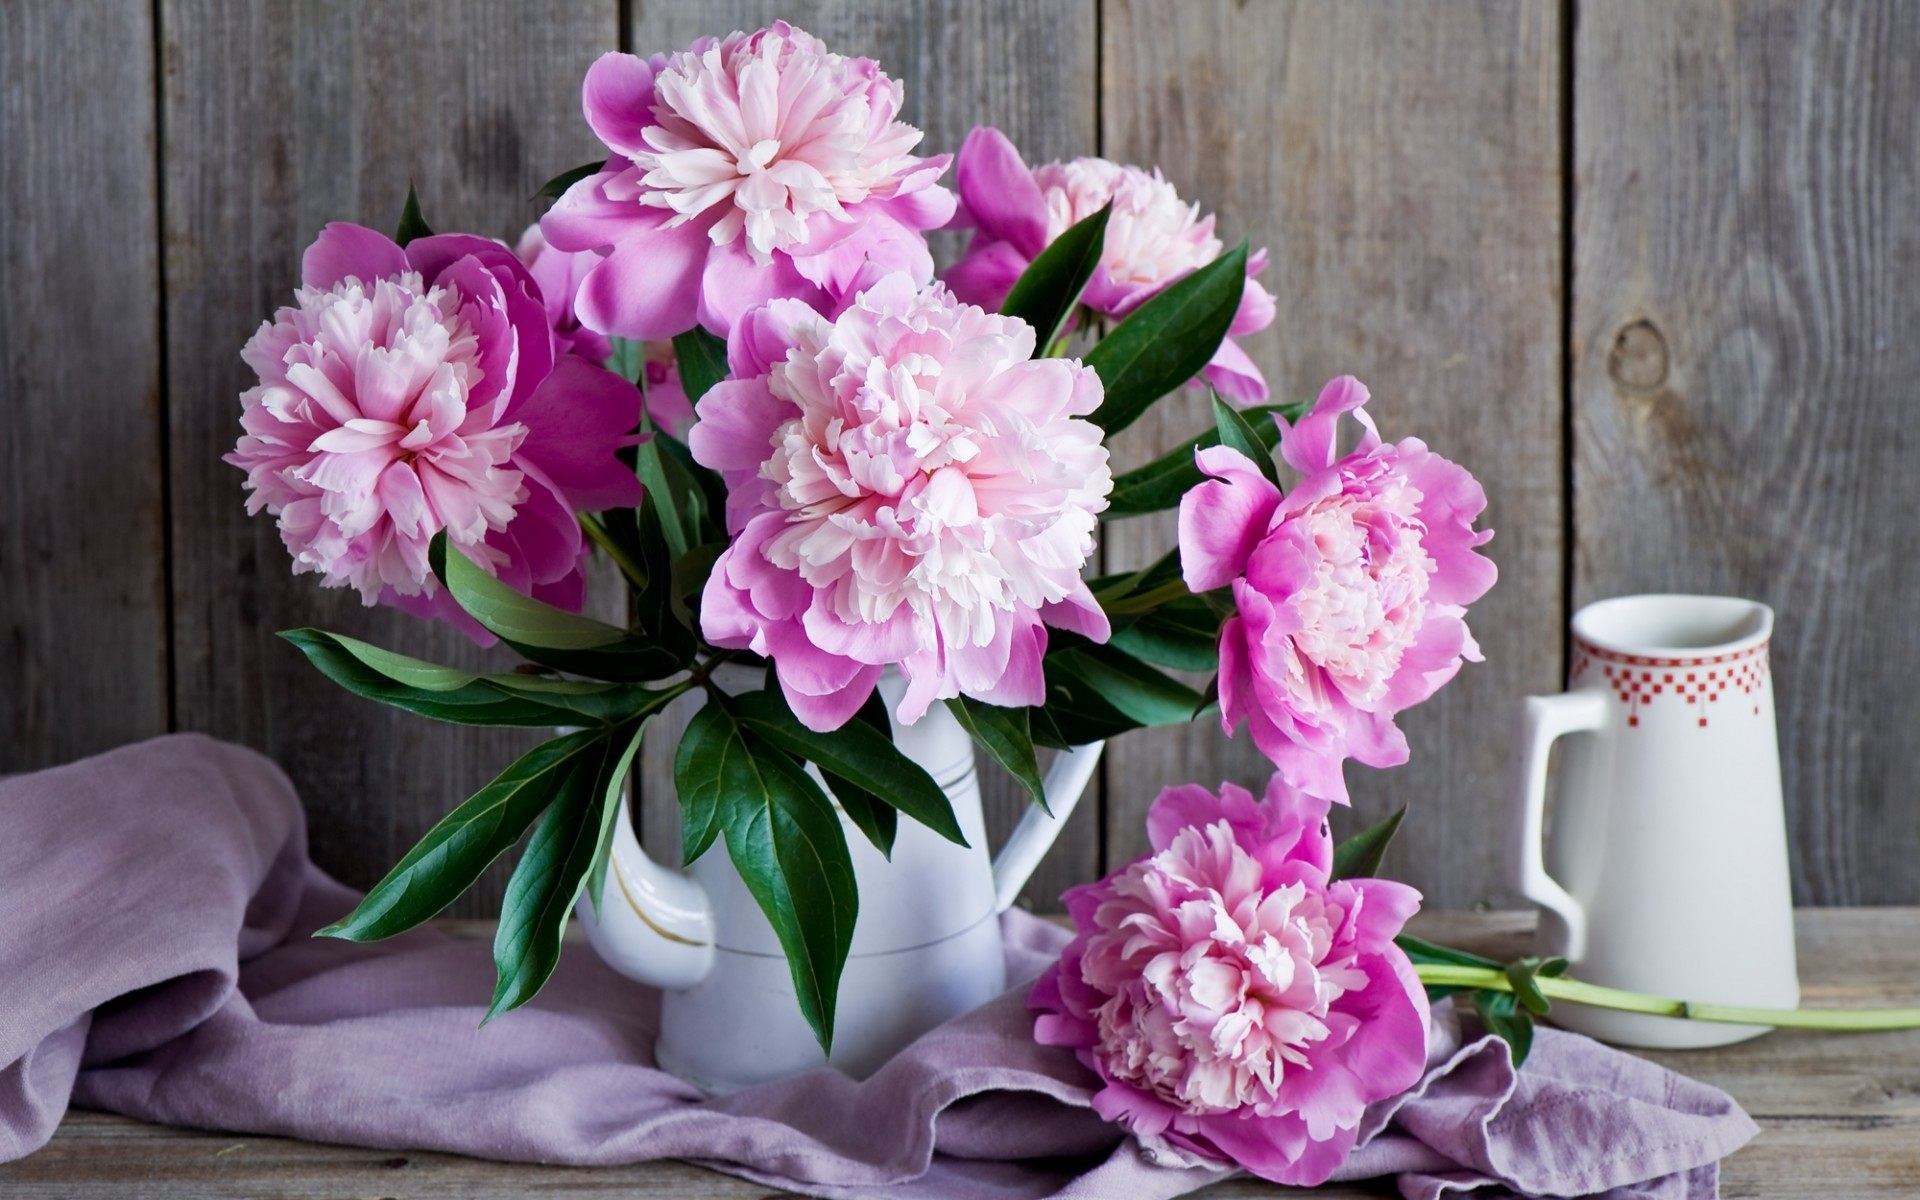 Desktop Wallpaper Peonies 57 Images